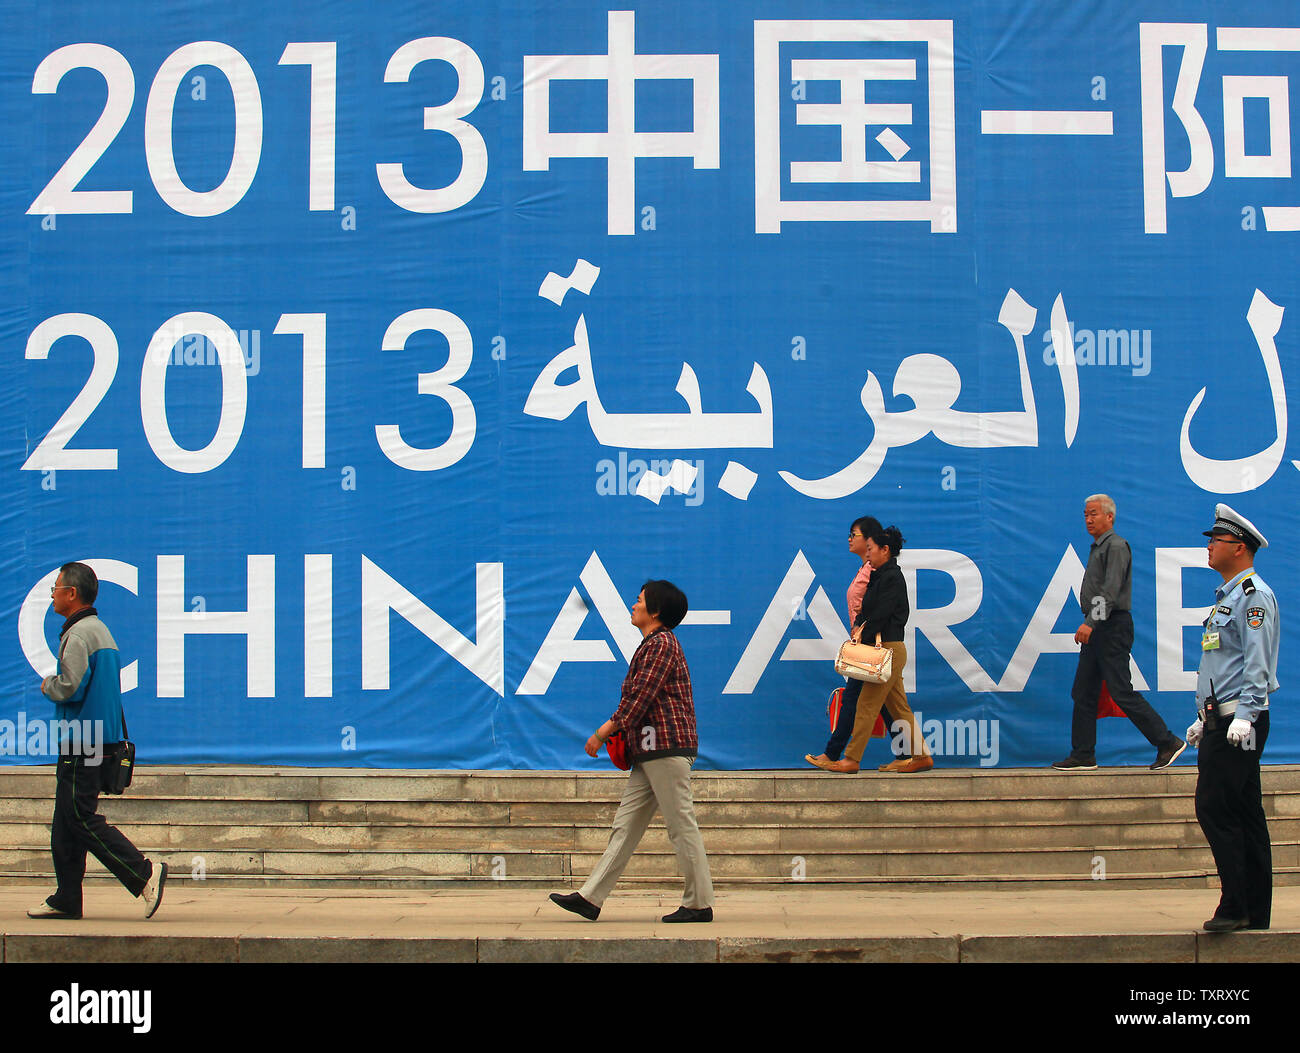 Chinese walk to the opening of the China-Arab State Expo beijing held in Yinchuan, the capital of China's northwestern Ningxia Hui Autonomous Region on September 15, 2013.  Yinchuan, a predominantly Muslim city and a major crossroad between China and her Muslim neighbors, is being developed as the capital of China-Arab bilateral trade.    UPI/Stephen Shaver Stock Photo